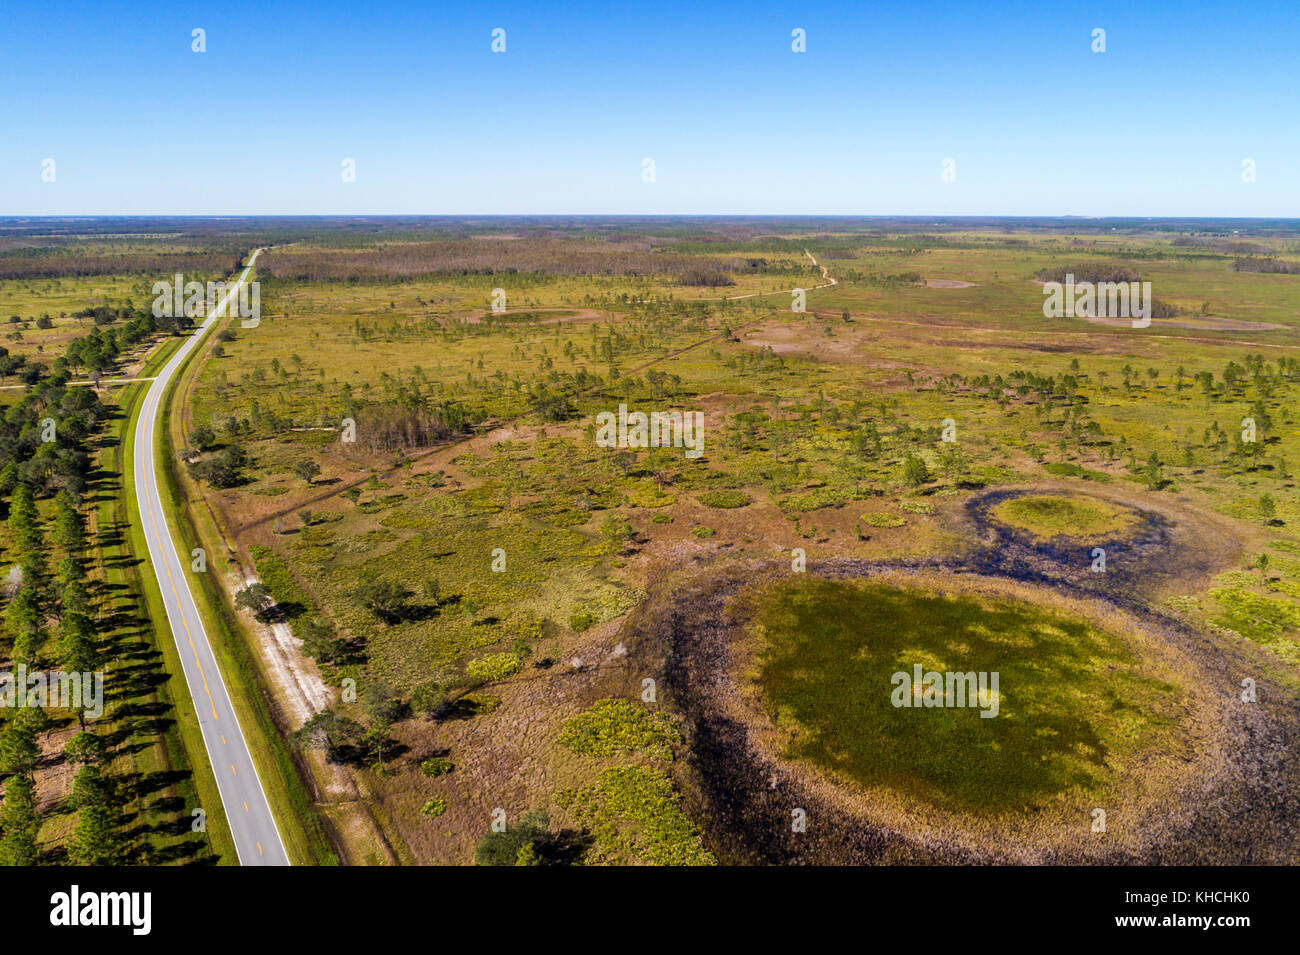 Florida Kenansville Lake Marian Highlands Three Lakes Wildlife Management Area State Road 523 highway aerial overhead - Stock Image